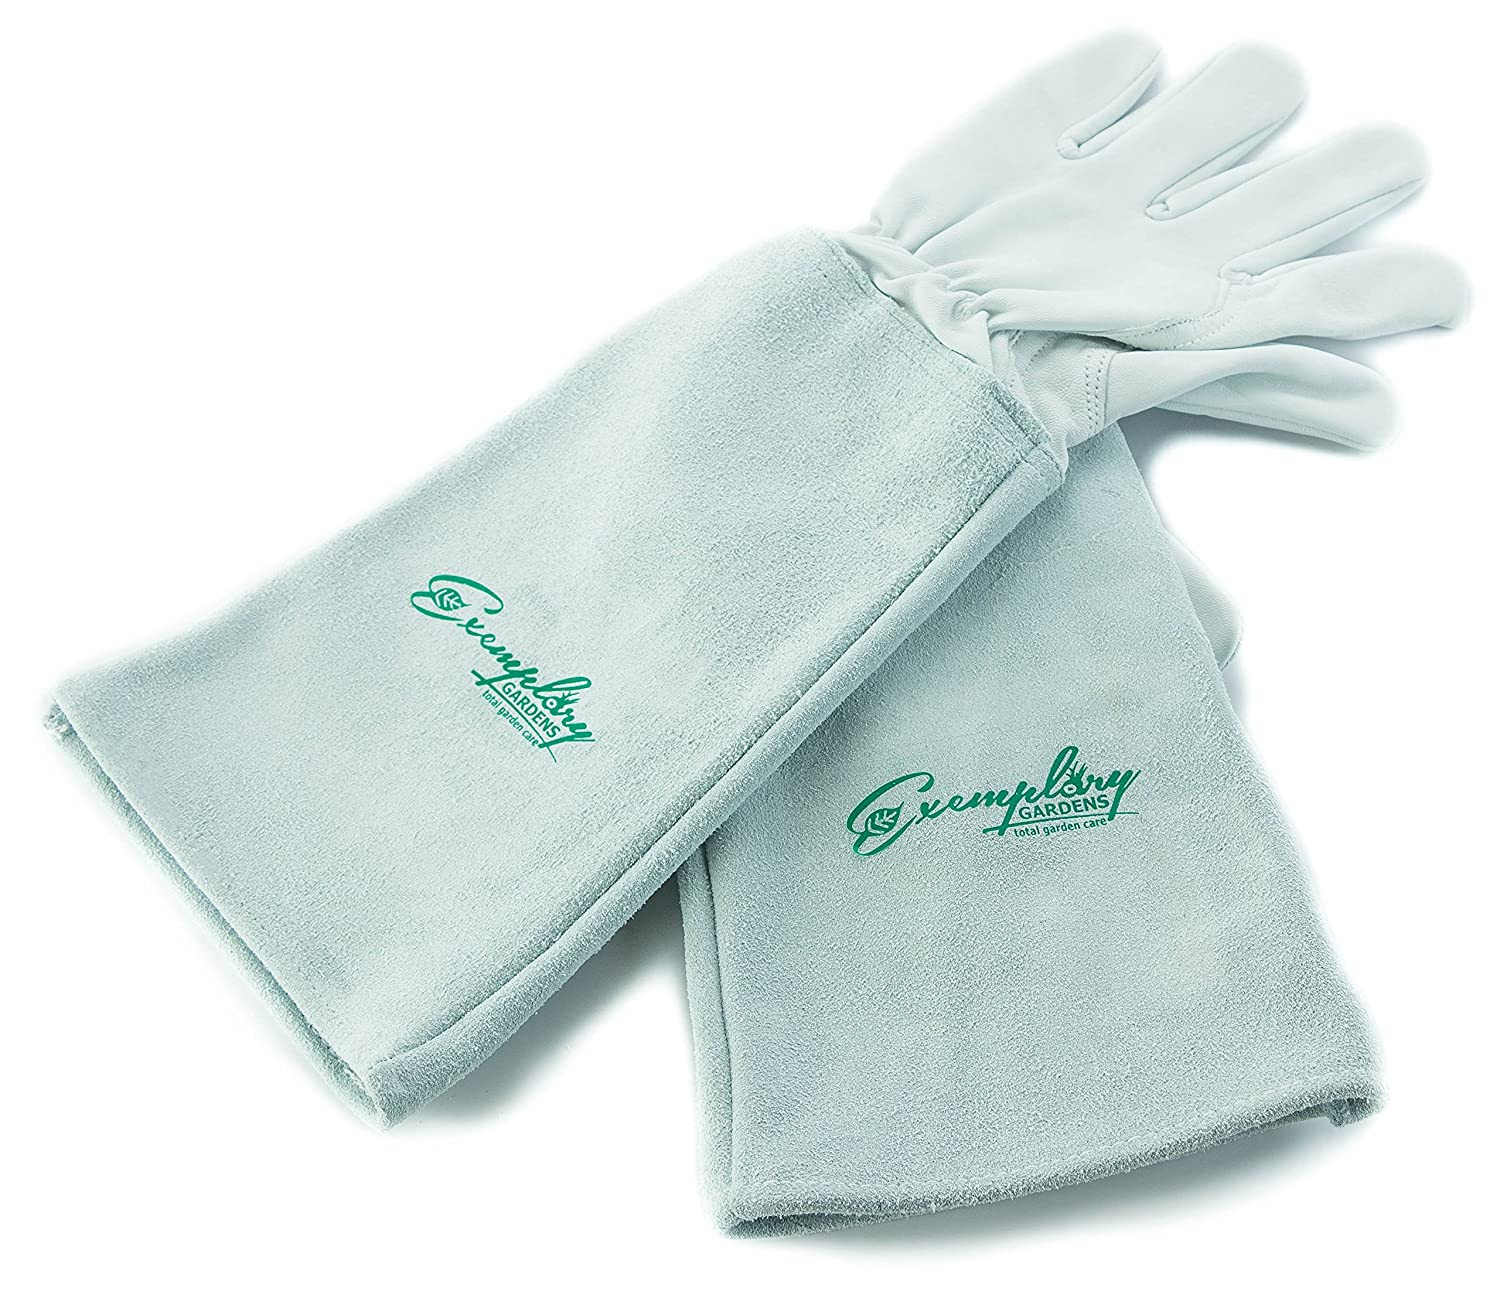 Rose Pruning Gloves for Men and Women. Thorn Proof Goatskin Leather Gardening Gloves with Long Cowhide Gauntlet to Protect Your Arms Until The Elbow (Extra Small)